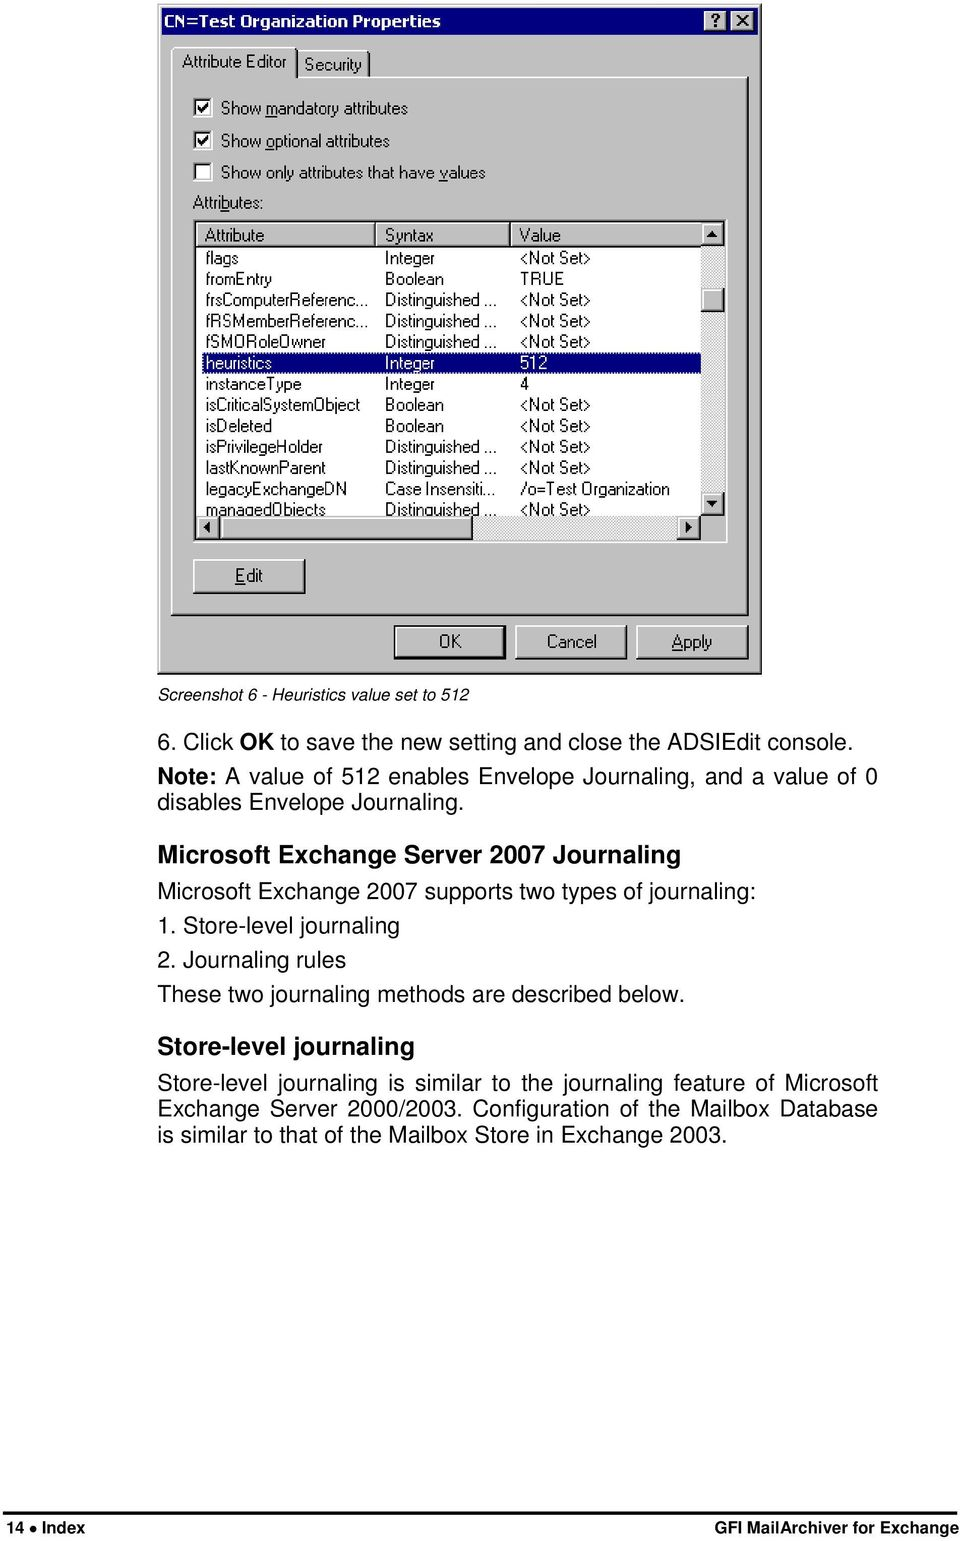 Microsoft Exchange Server 2007 Journaling Microsoft Exchange 2007 supports two types of journaling: 1. Store-level journaling 2.